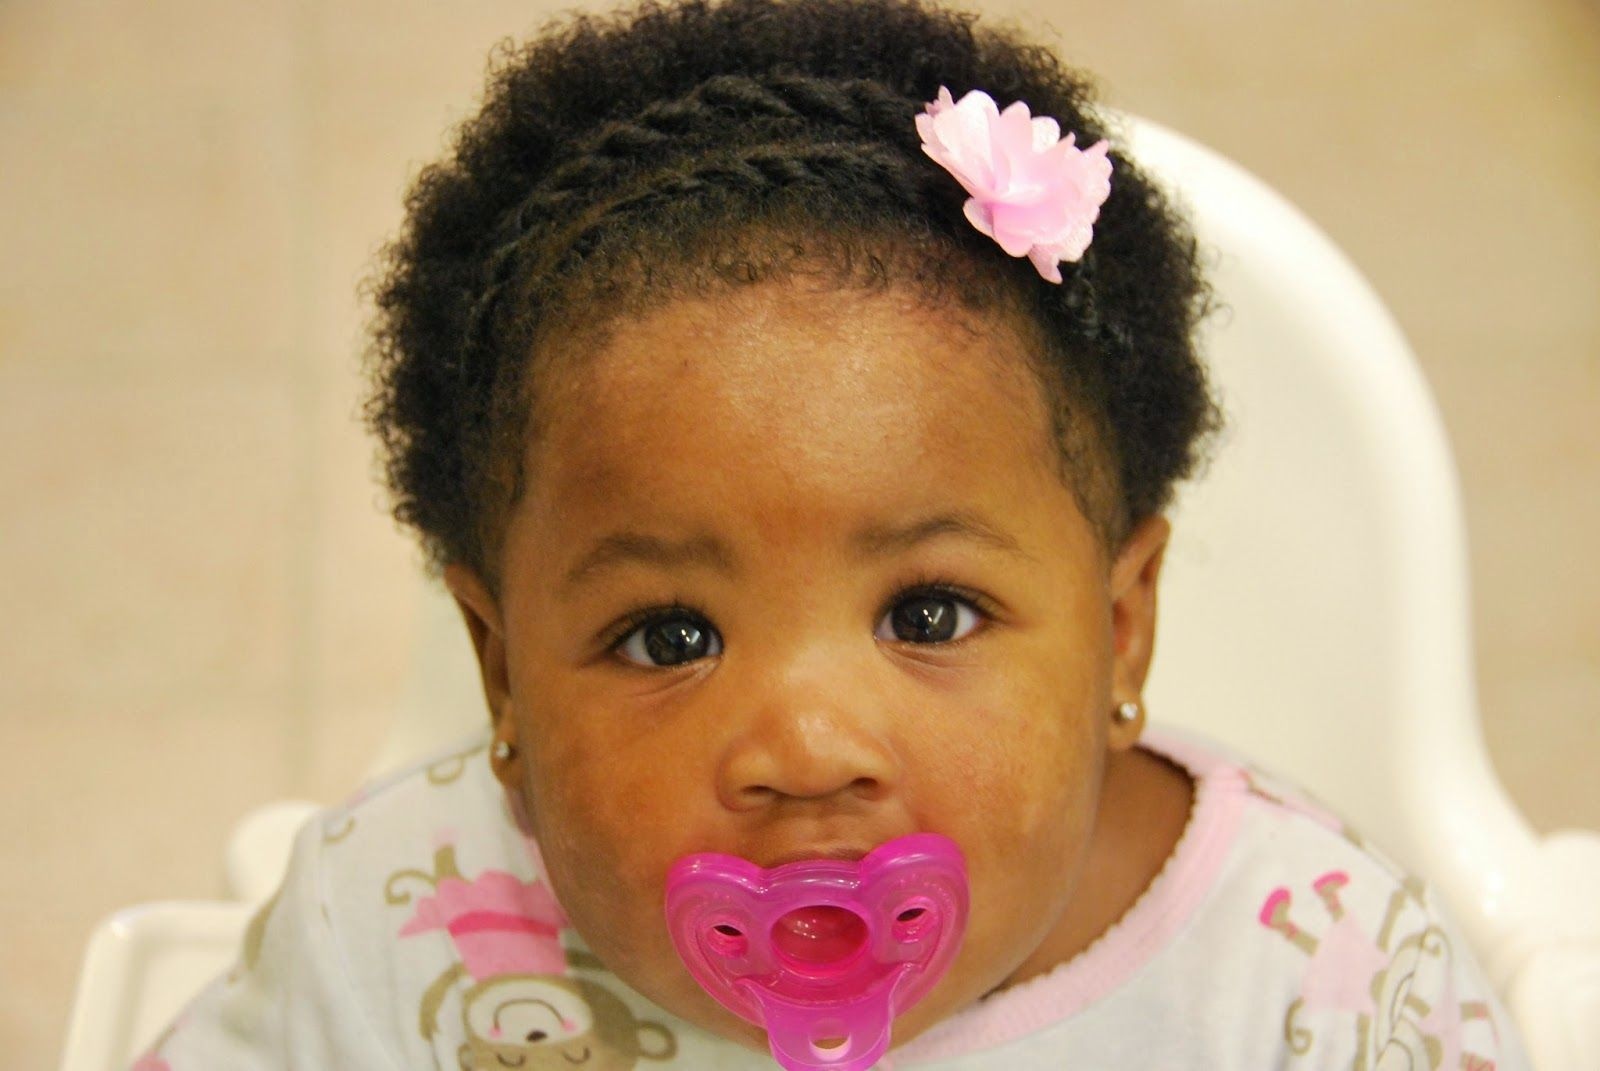 Black Baby Hair Styles Google Search Black Baby Hairstyles Black Baby Girl Hairstyles Baby Girl Hairstyles